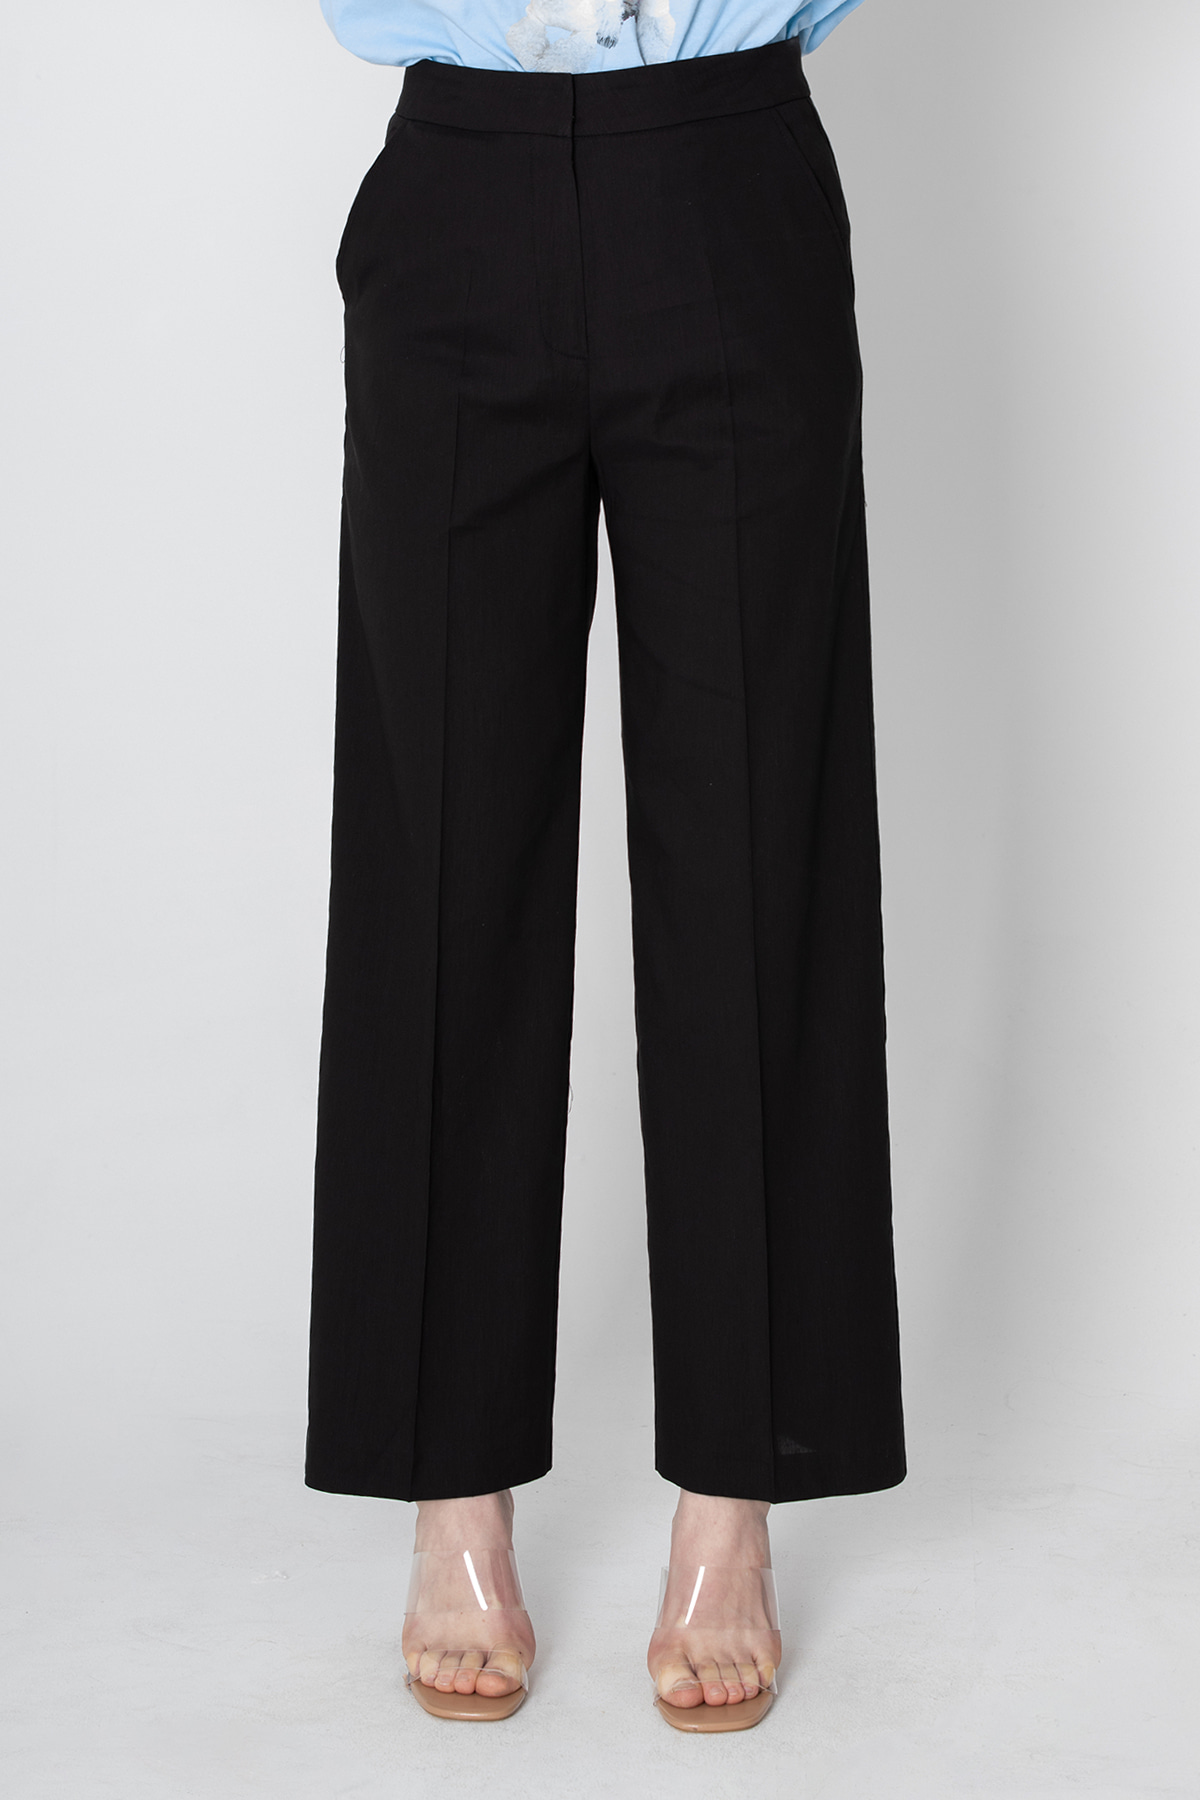 POOCION Basic Trouser (Black)